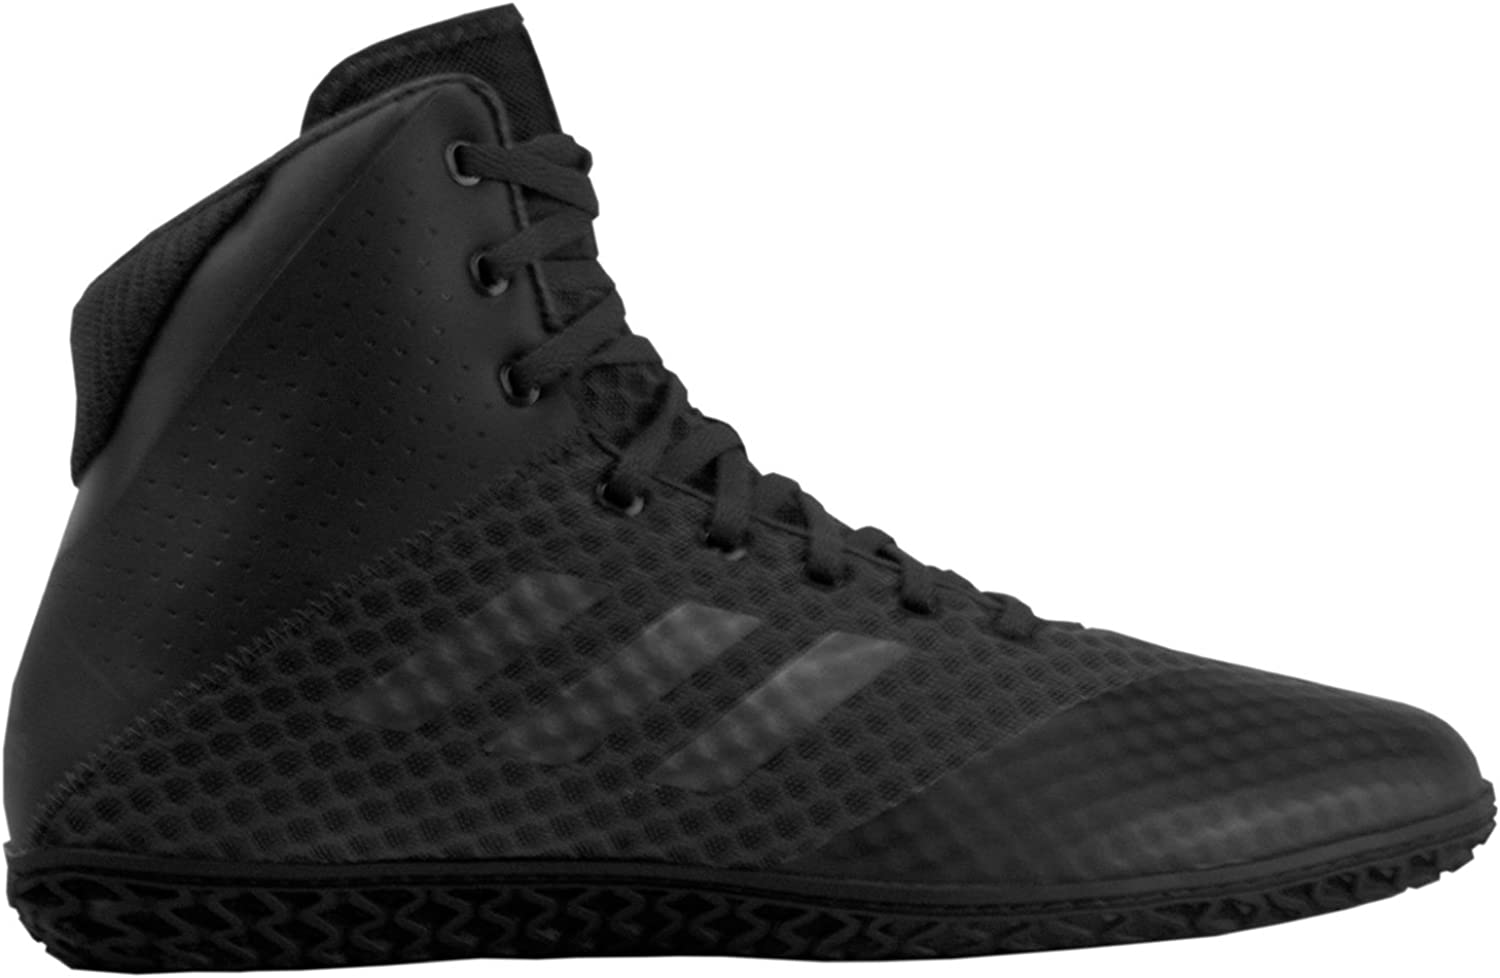 adidas Mat Wizard 4 Complete Free Shipping Carbon Metallic 9 Special Campaign Black